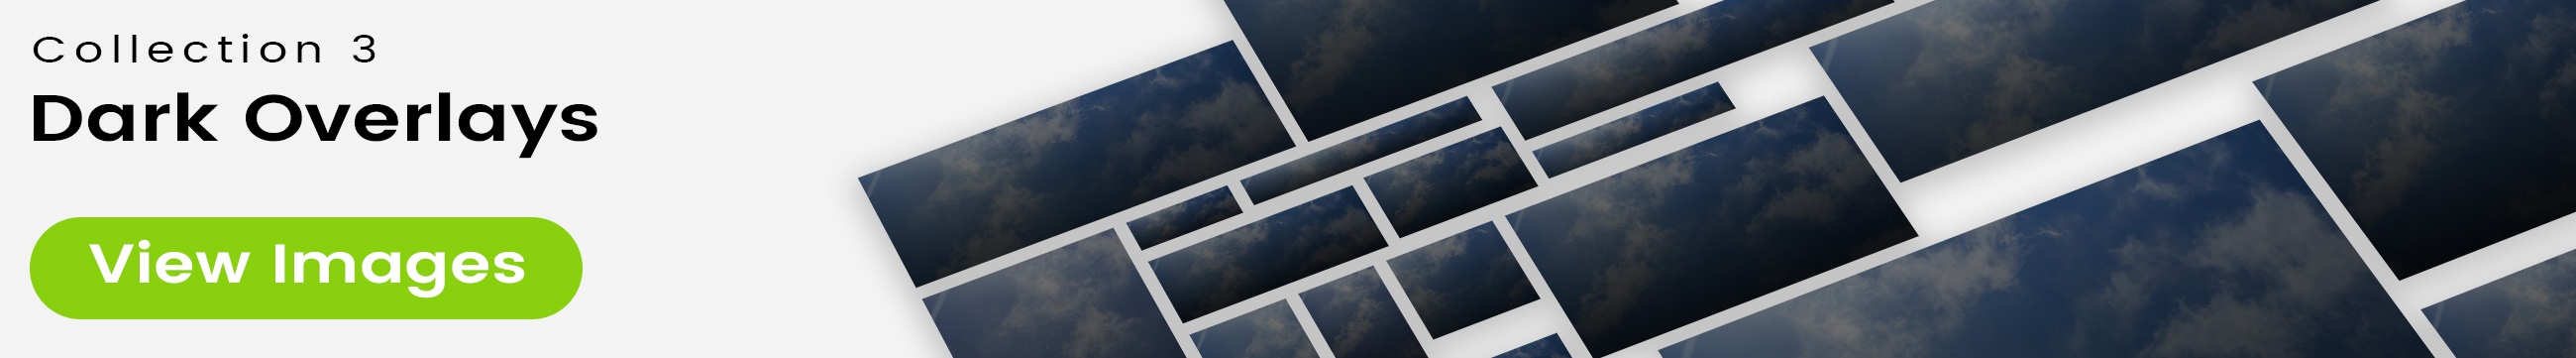 See 25 bonus images included with clouds stock image 9483. Collection 3 of 4 features a dark overlay design.